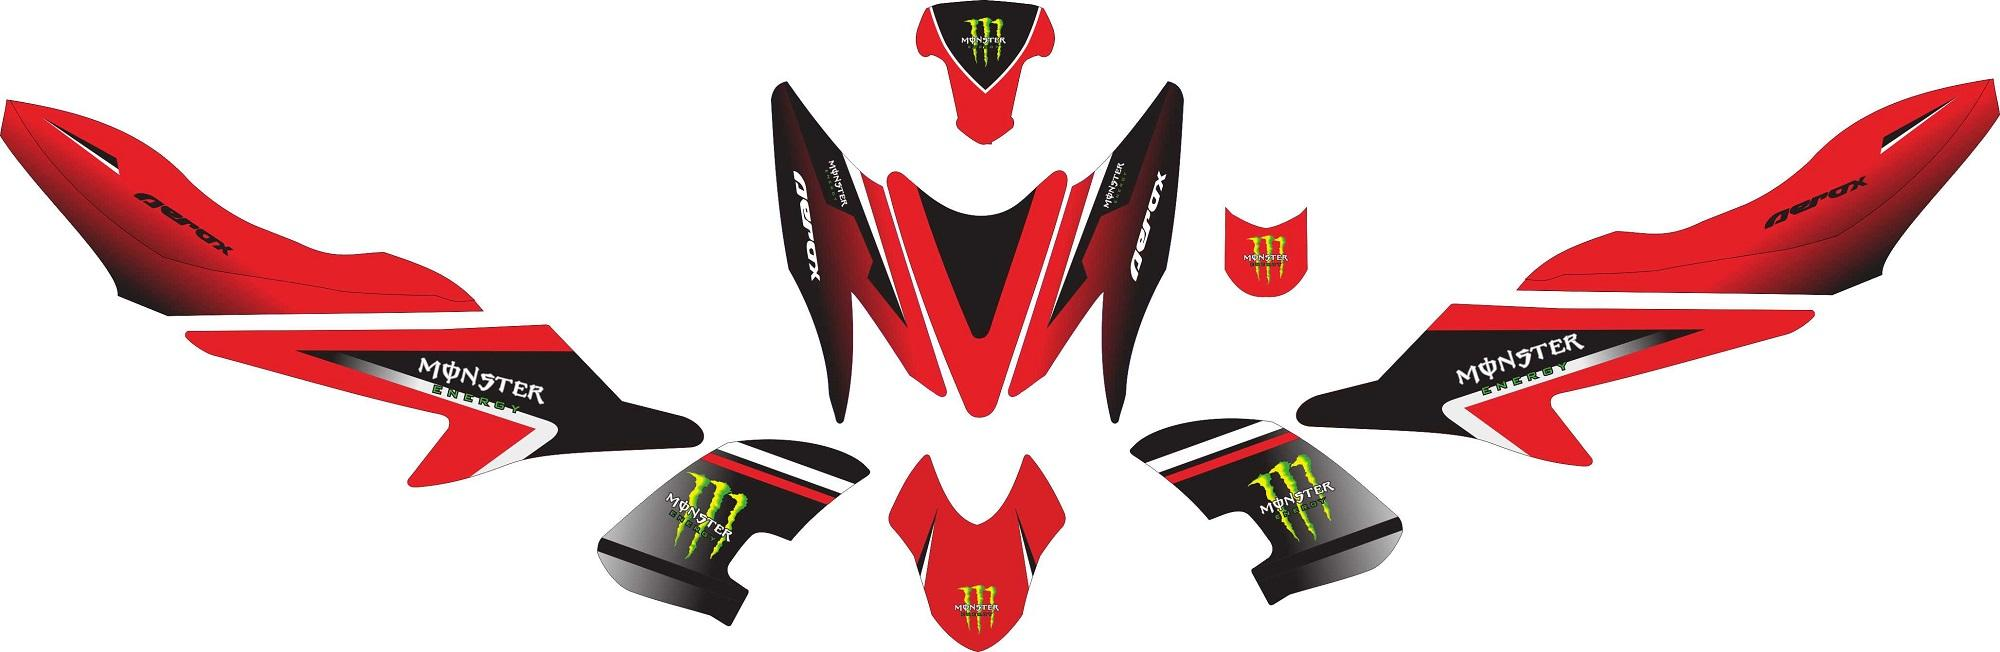 Stiker Motor Aerox 155 Monster Energy V2 Grade A By Master Decal.